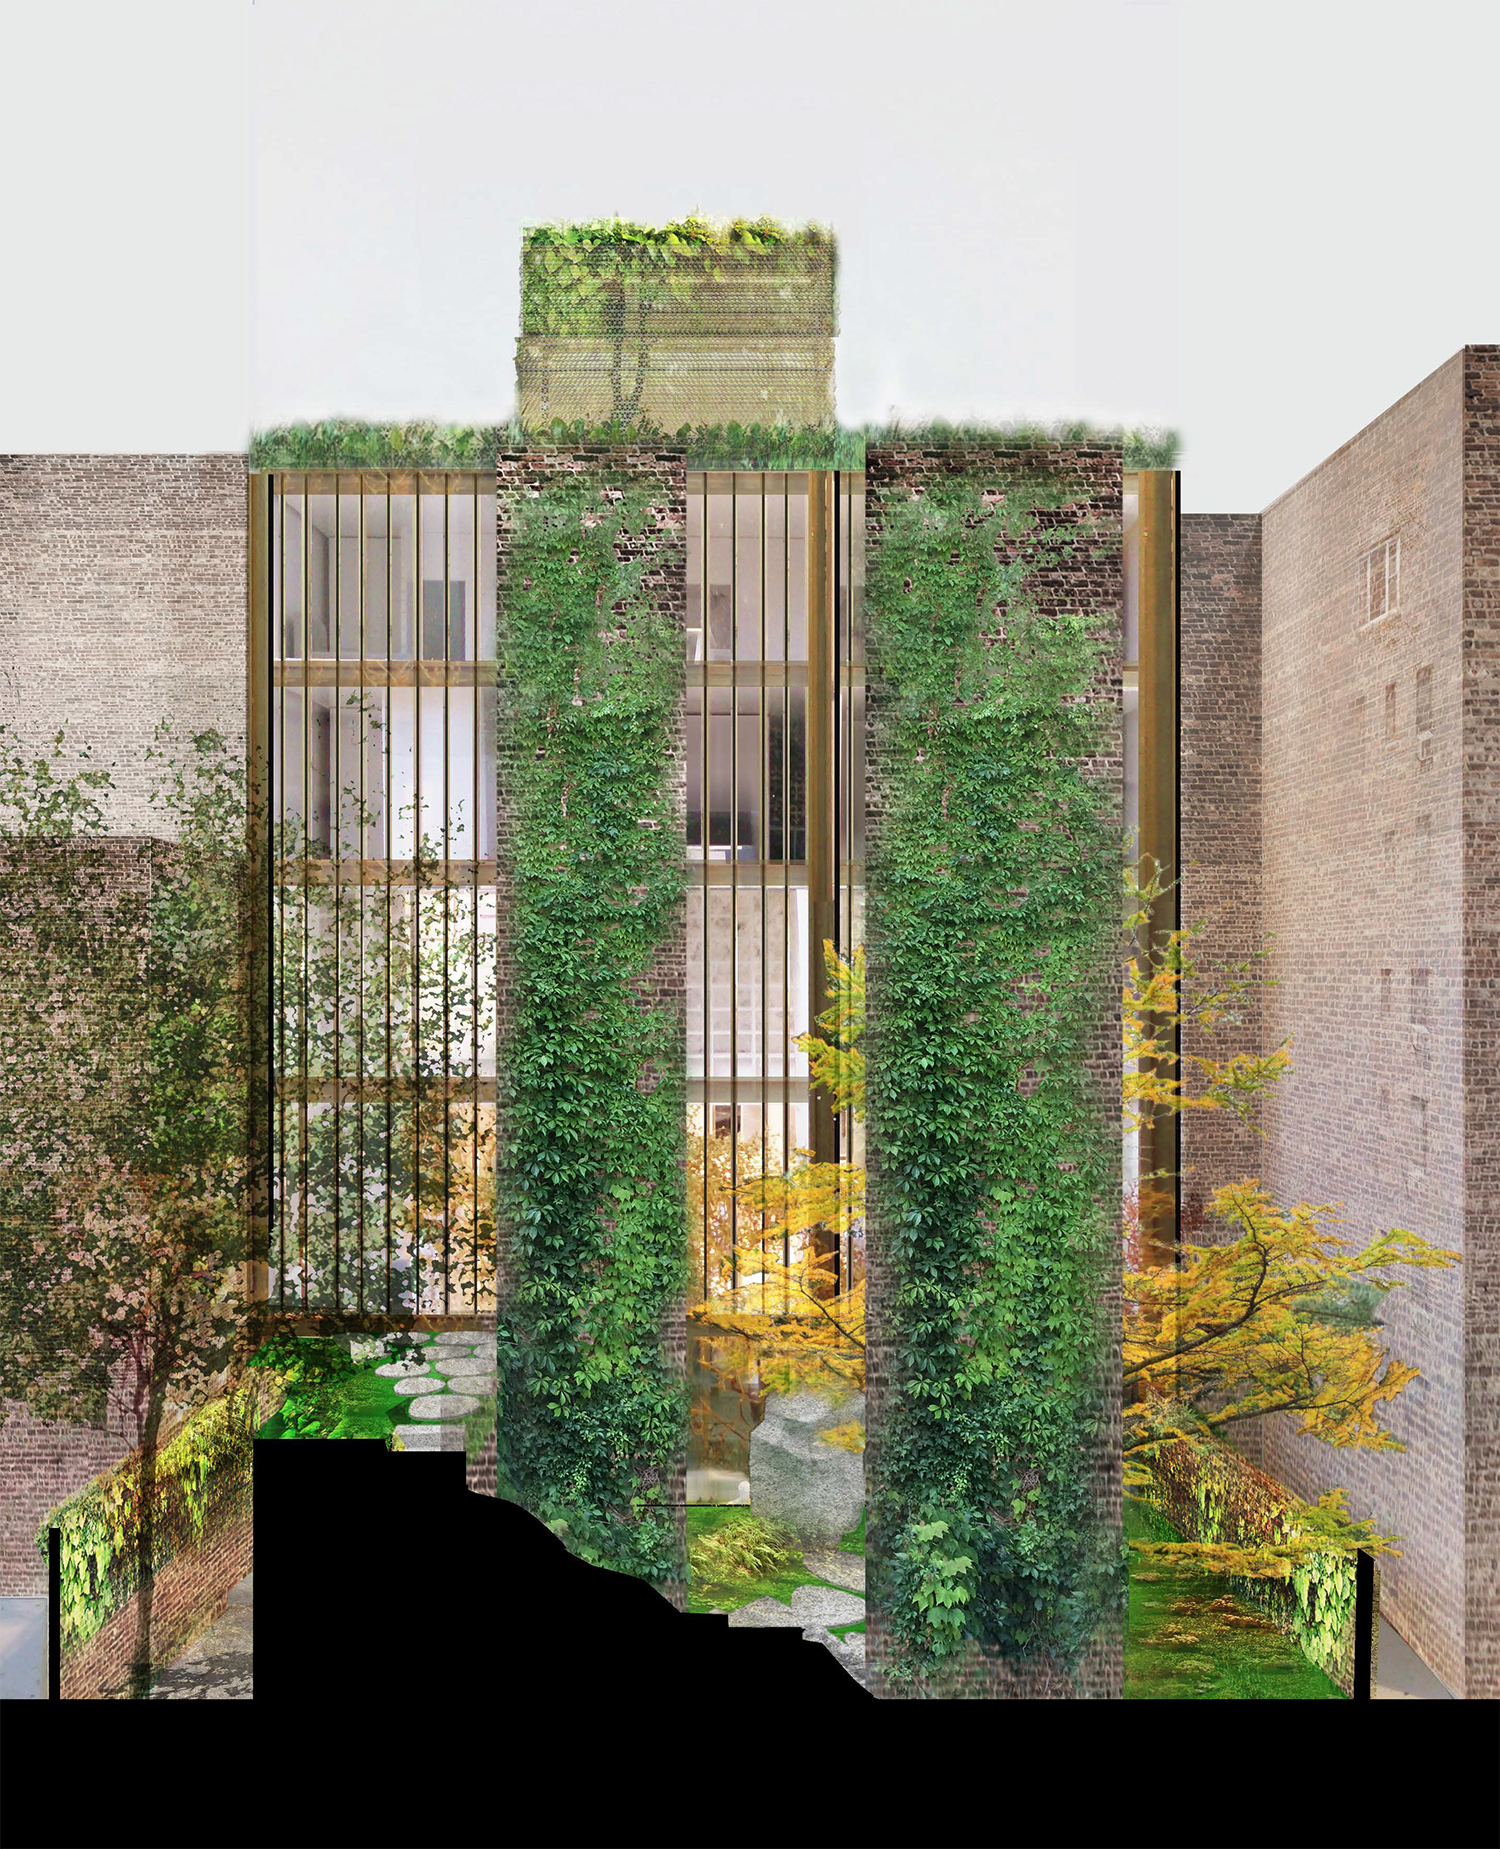 Proposed rear of 11-15 East 75th Street, rendering with vertical gardens